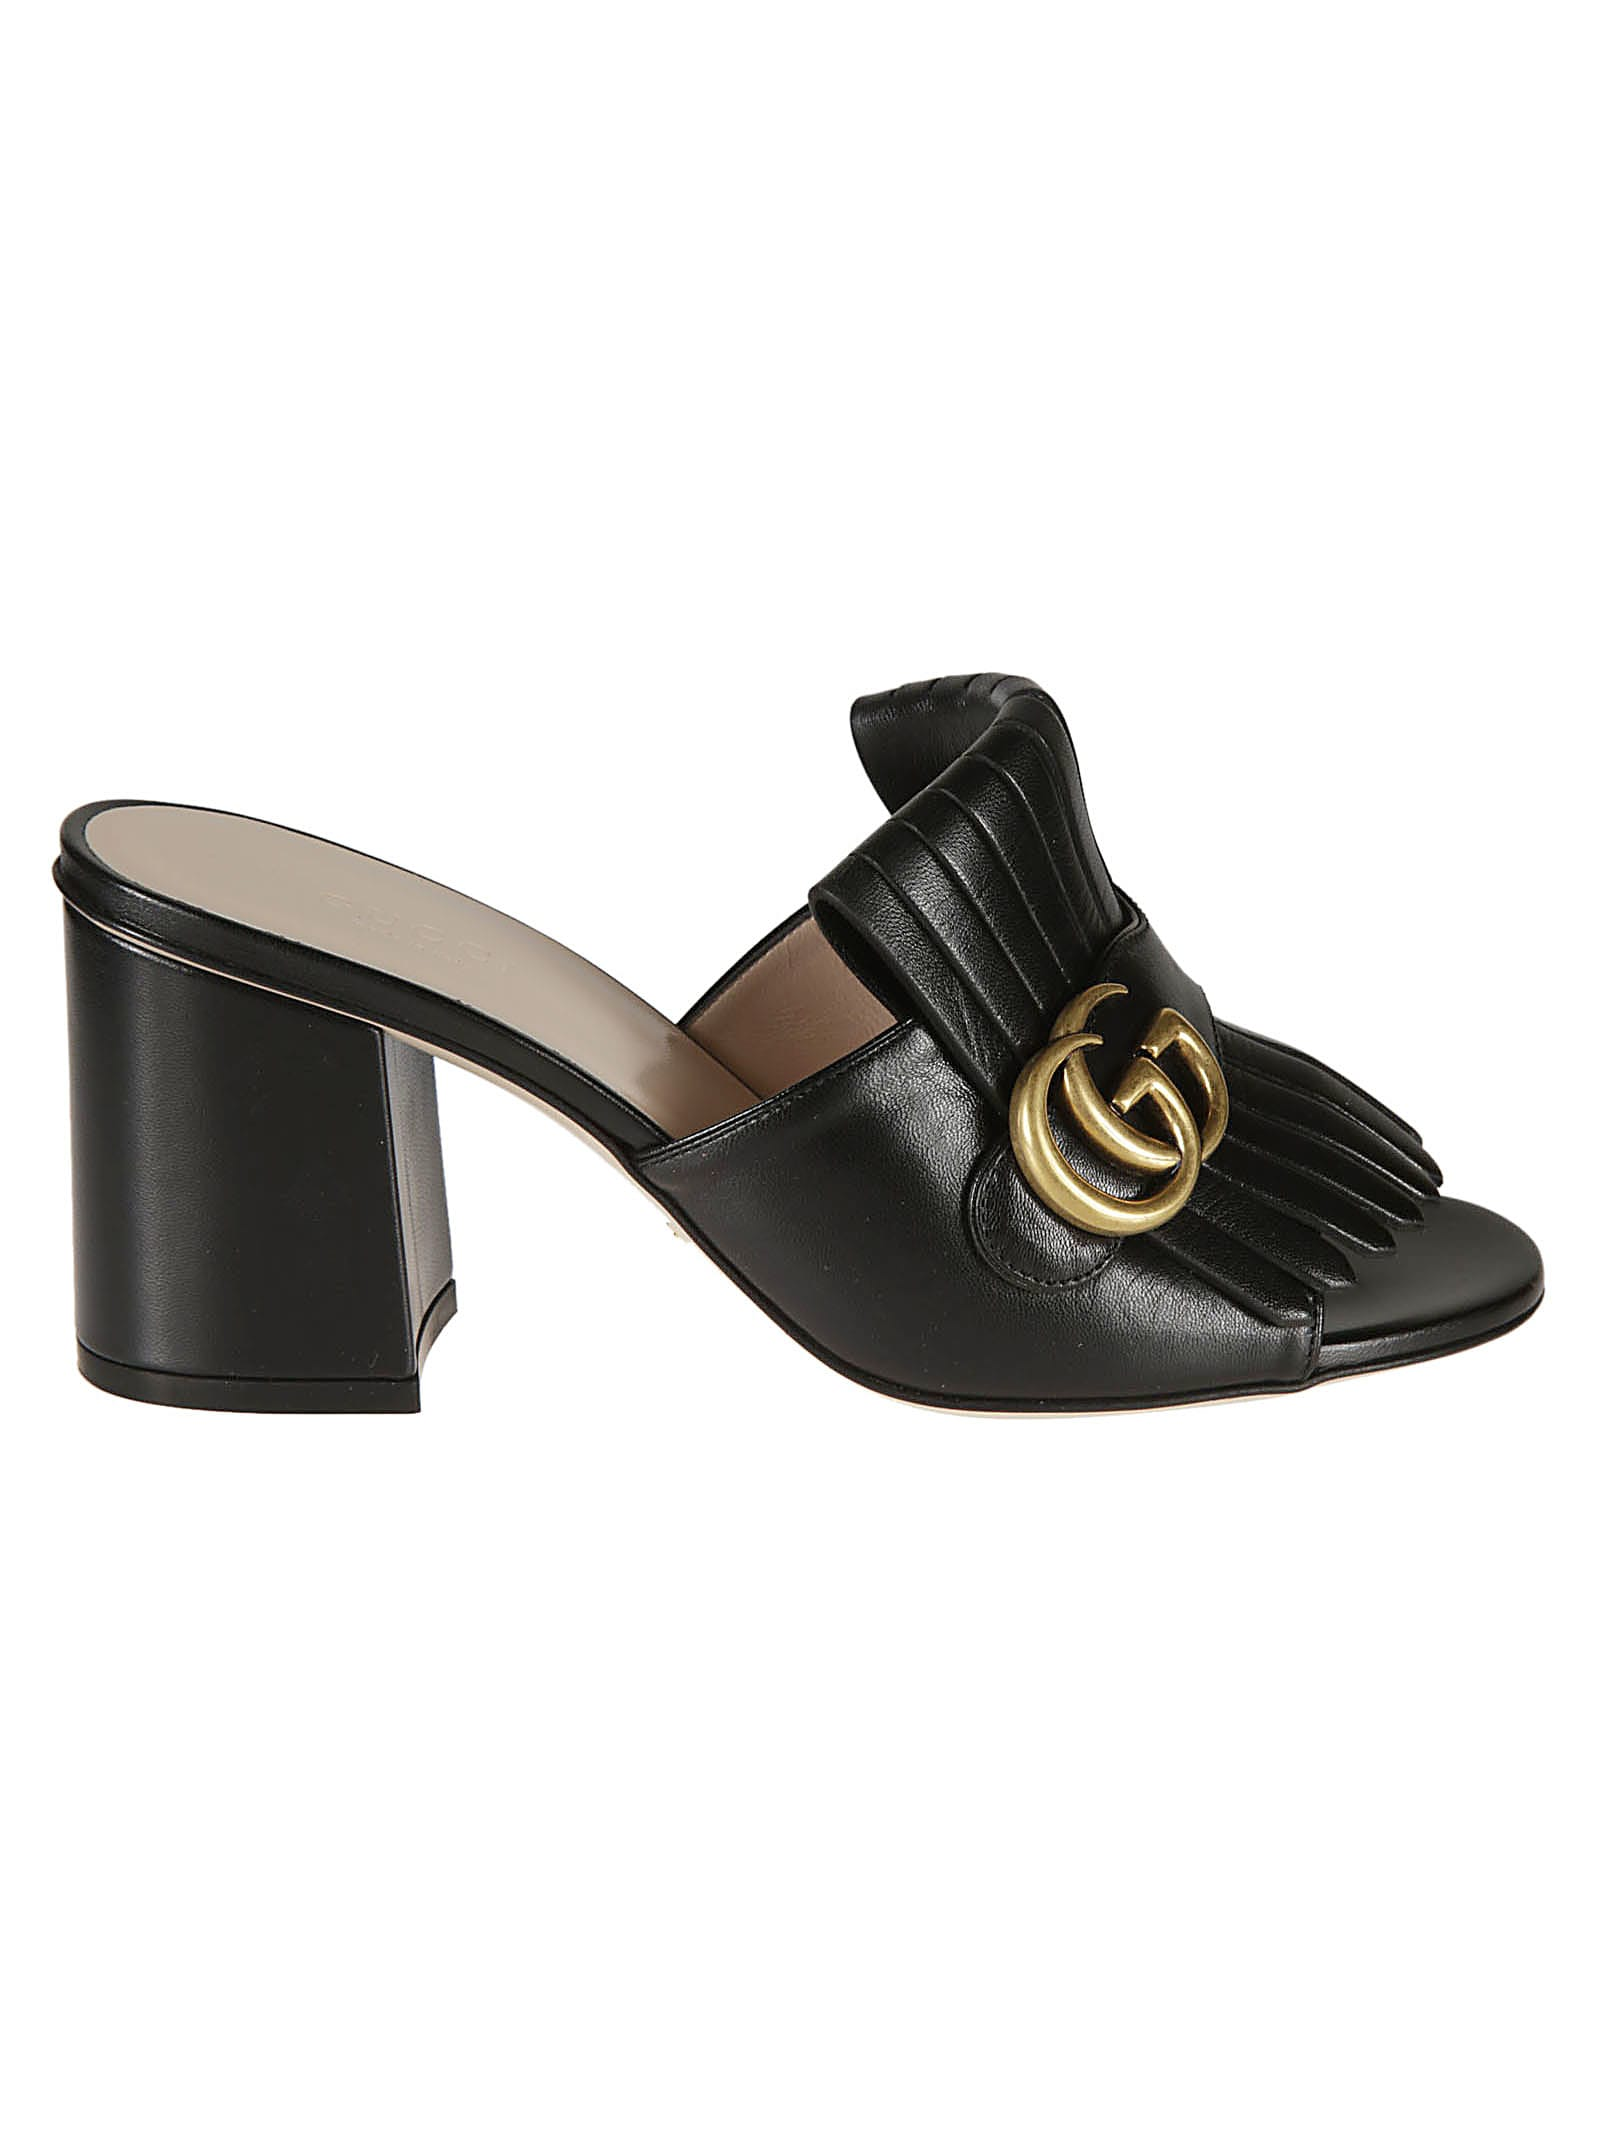 Gucci Sandals   italist, ALWAYS LIKE A SALE